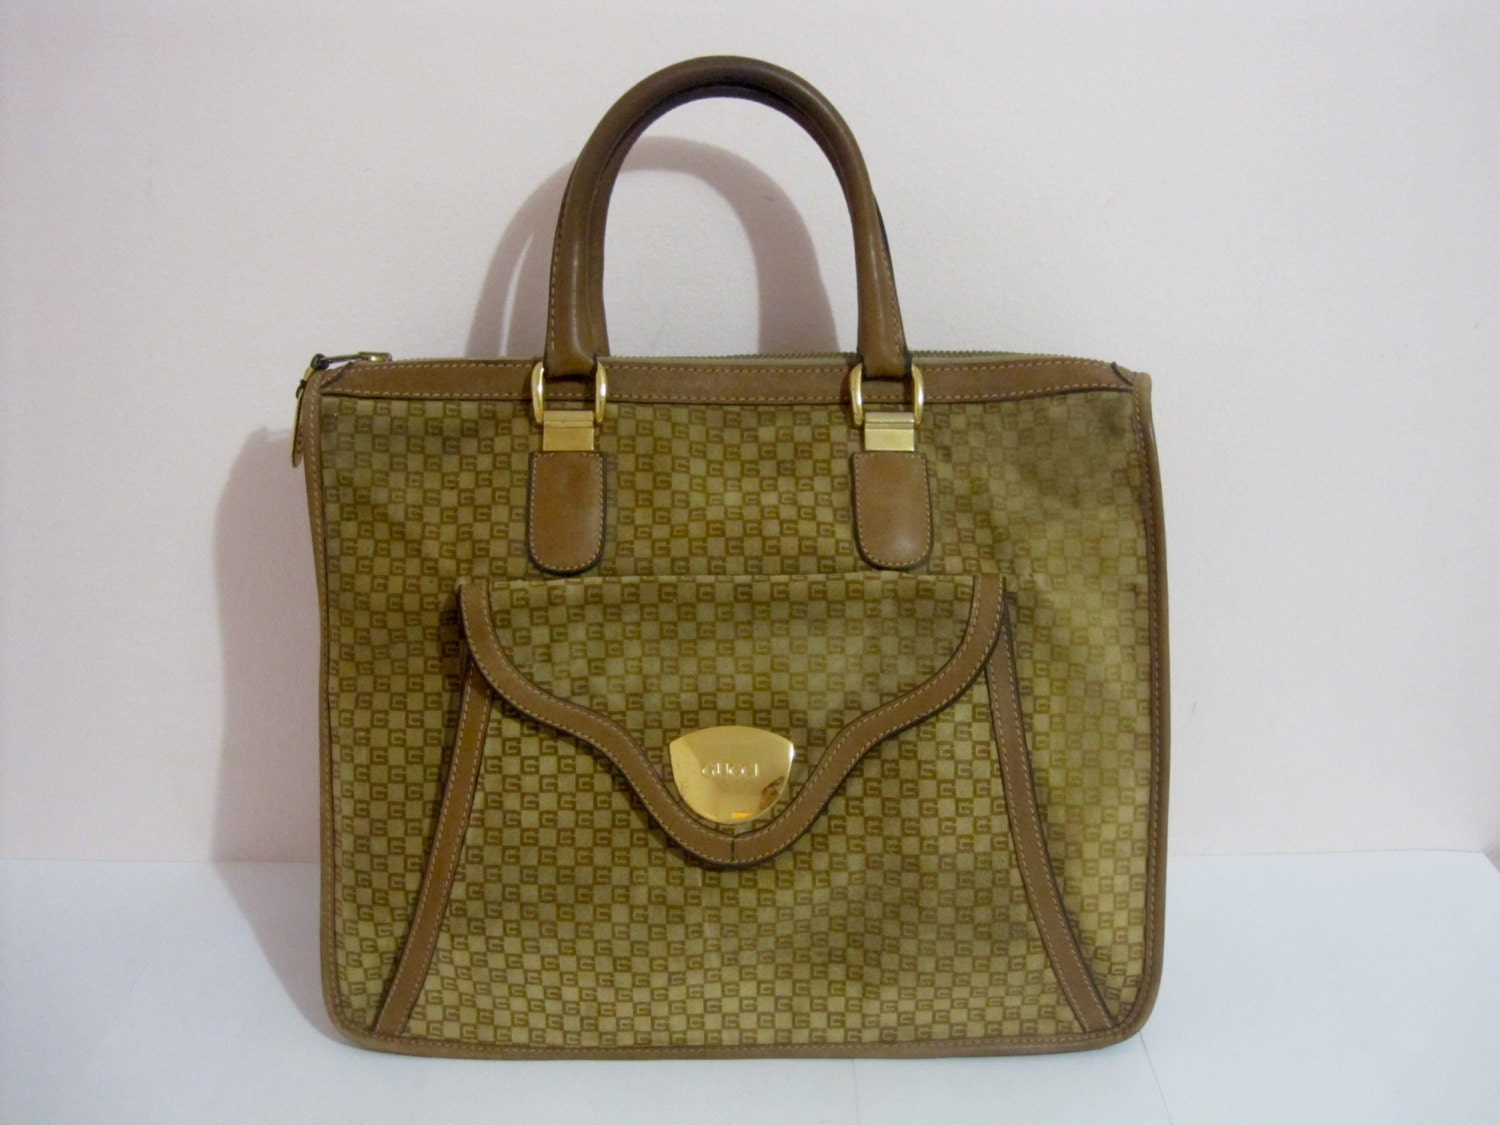 116d153c13b5 Gucci Vintage Leather Tote Bag | Stanford Center for Opportunity ...